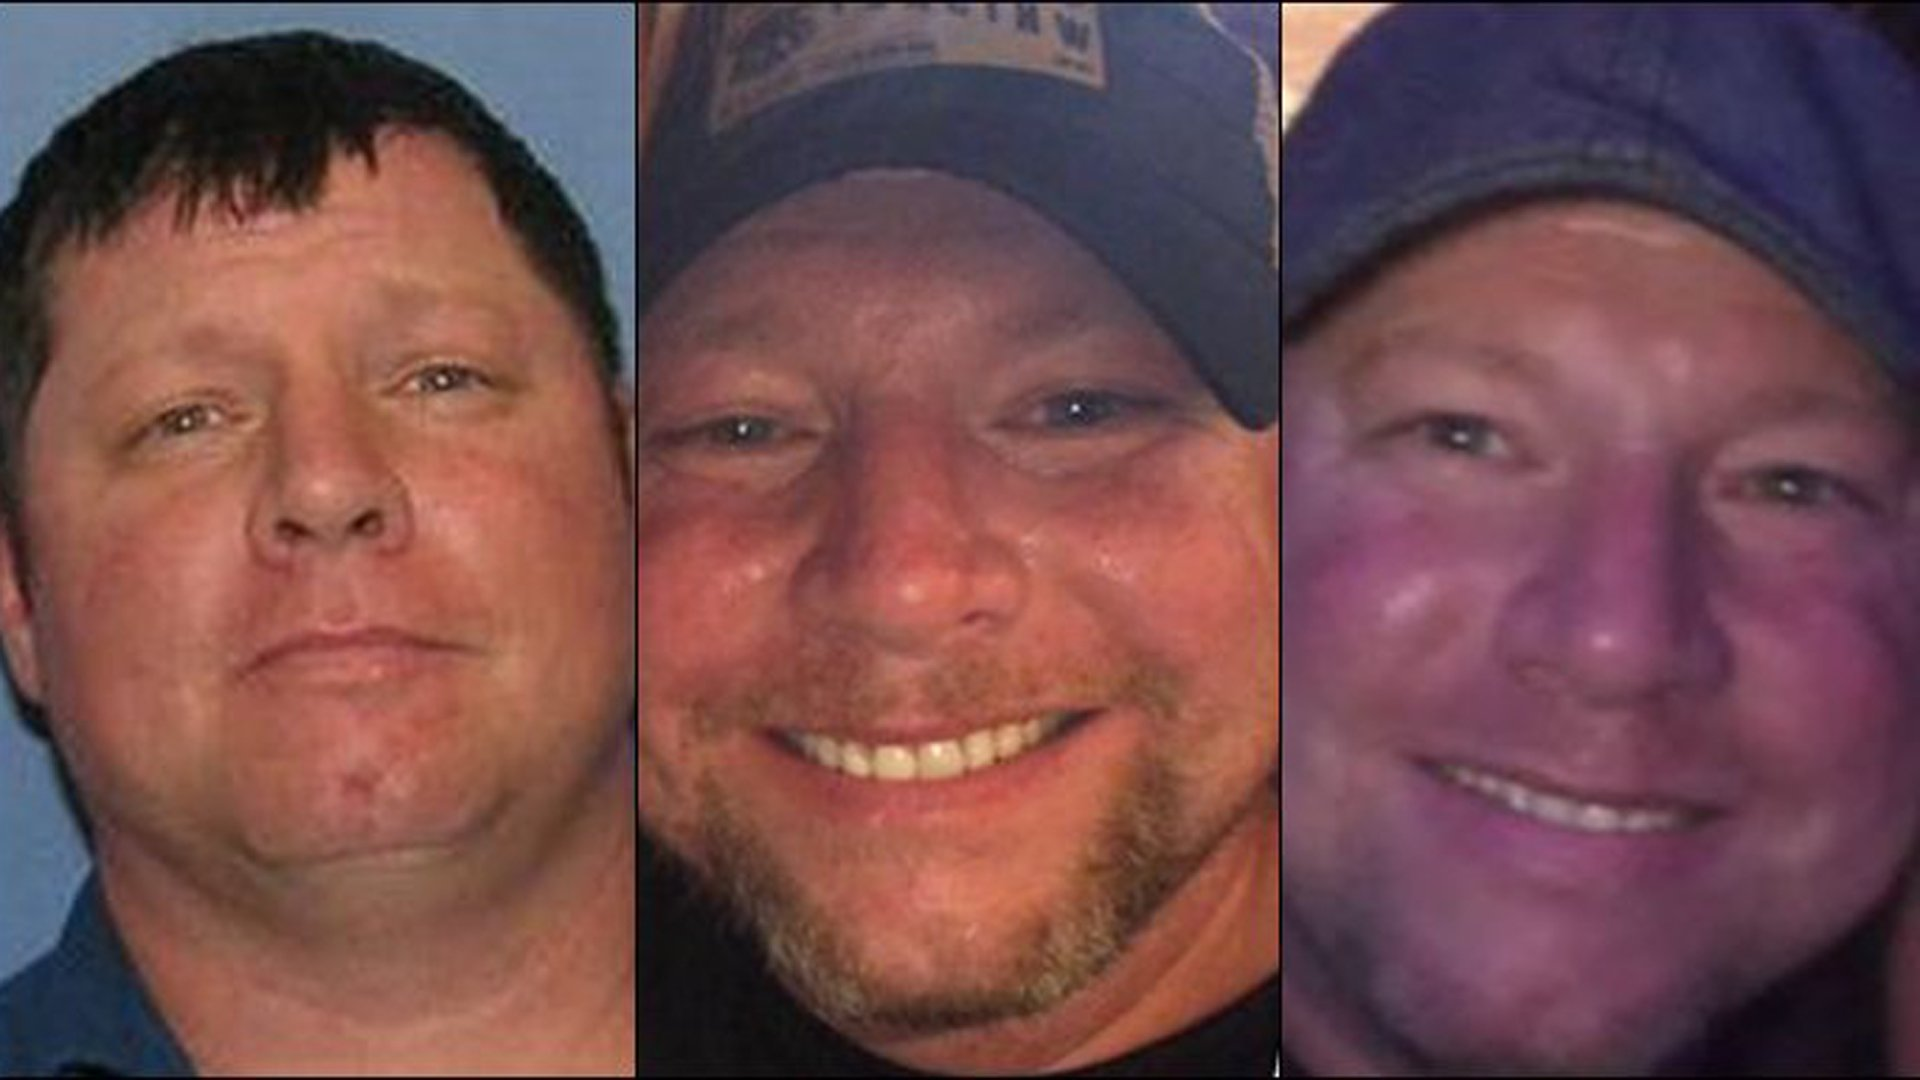 The U.S. Marshals' Office released these photos of Jacob Blair Scott on Jan. 29, 2020.